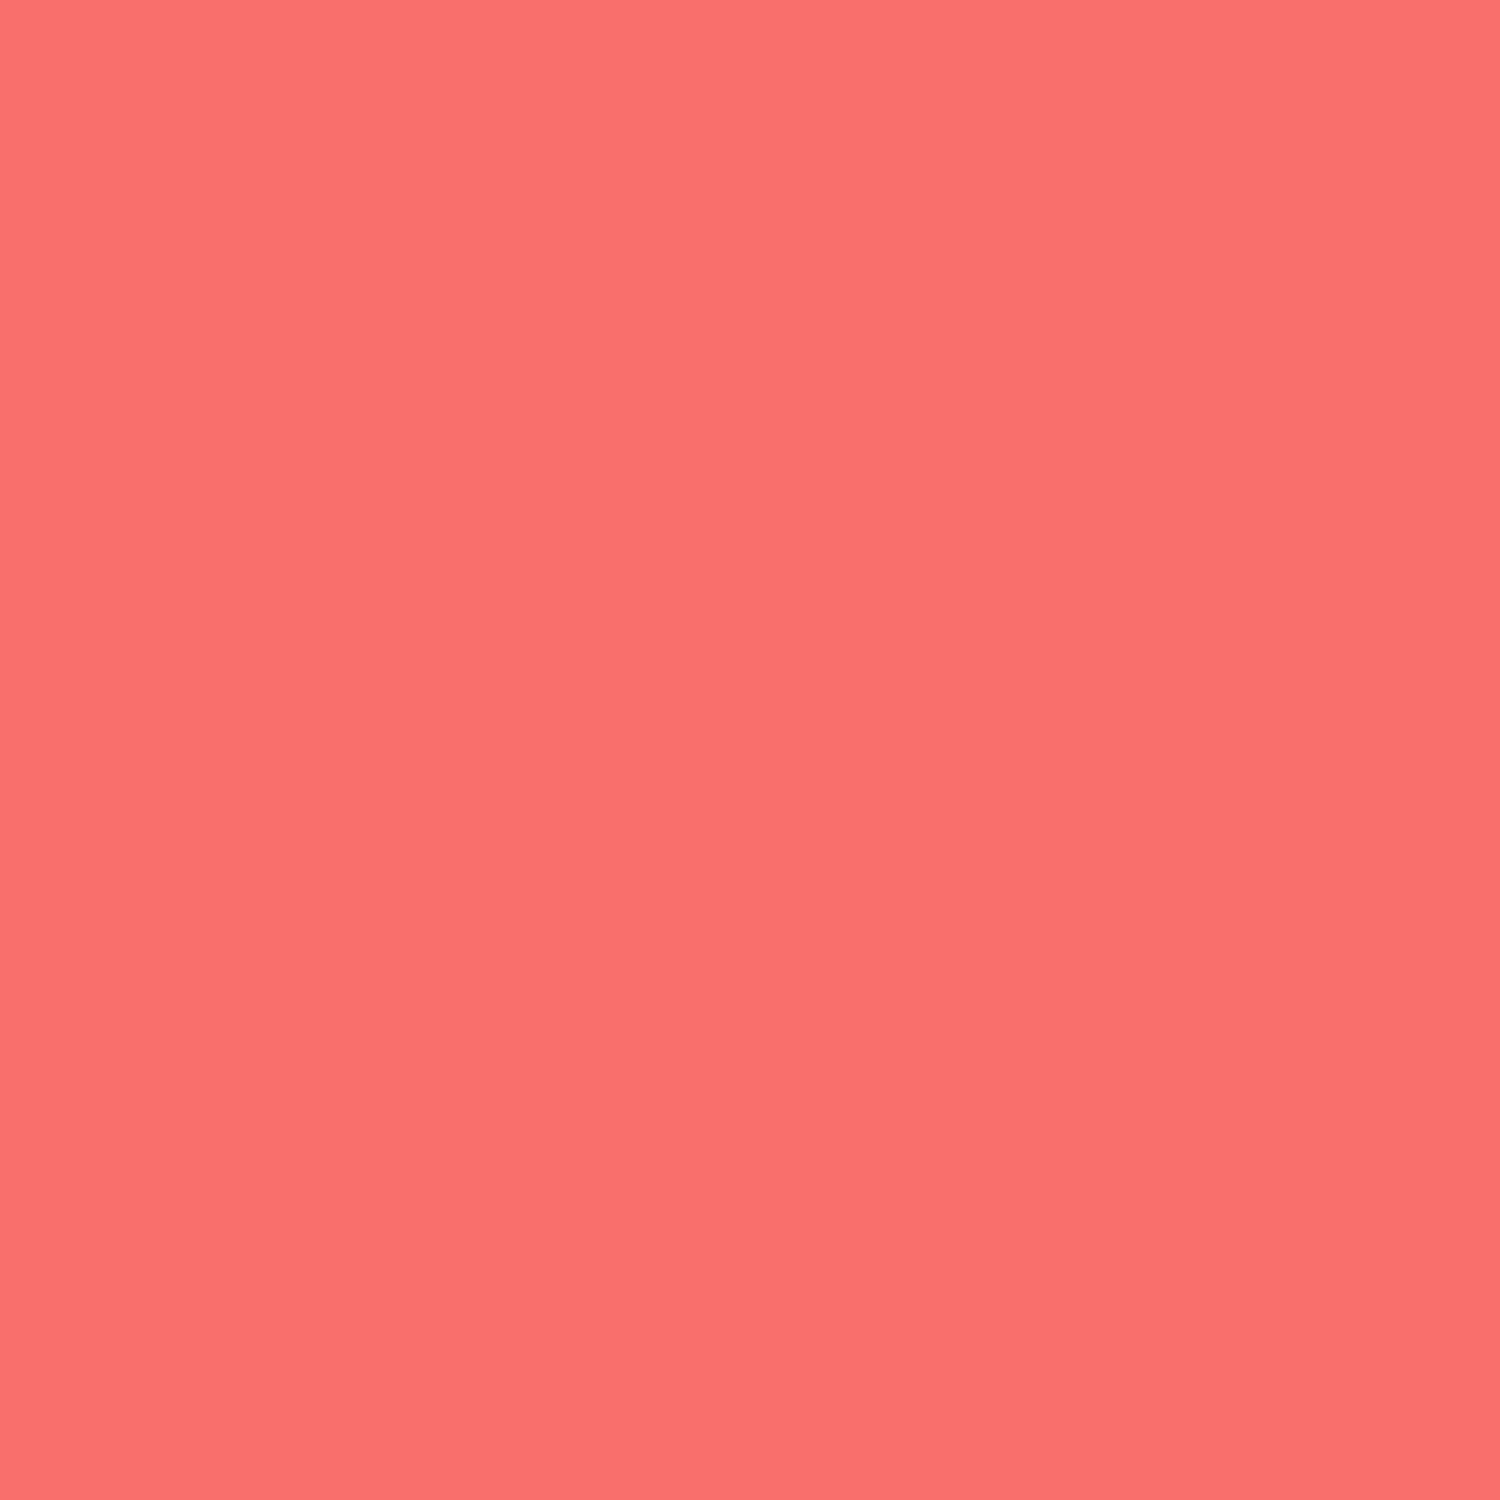 Pantone Colour of the Year 2019 16-1546 Living Coral